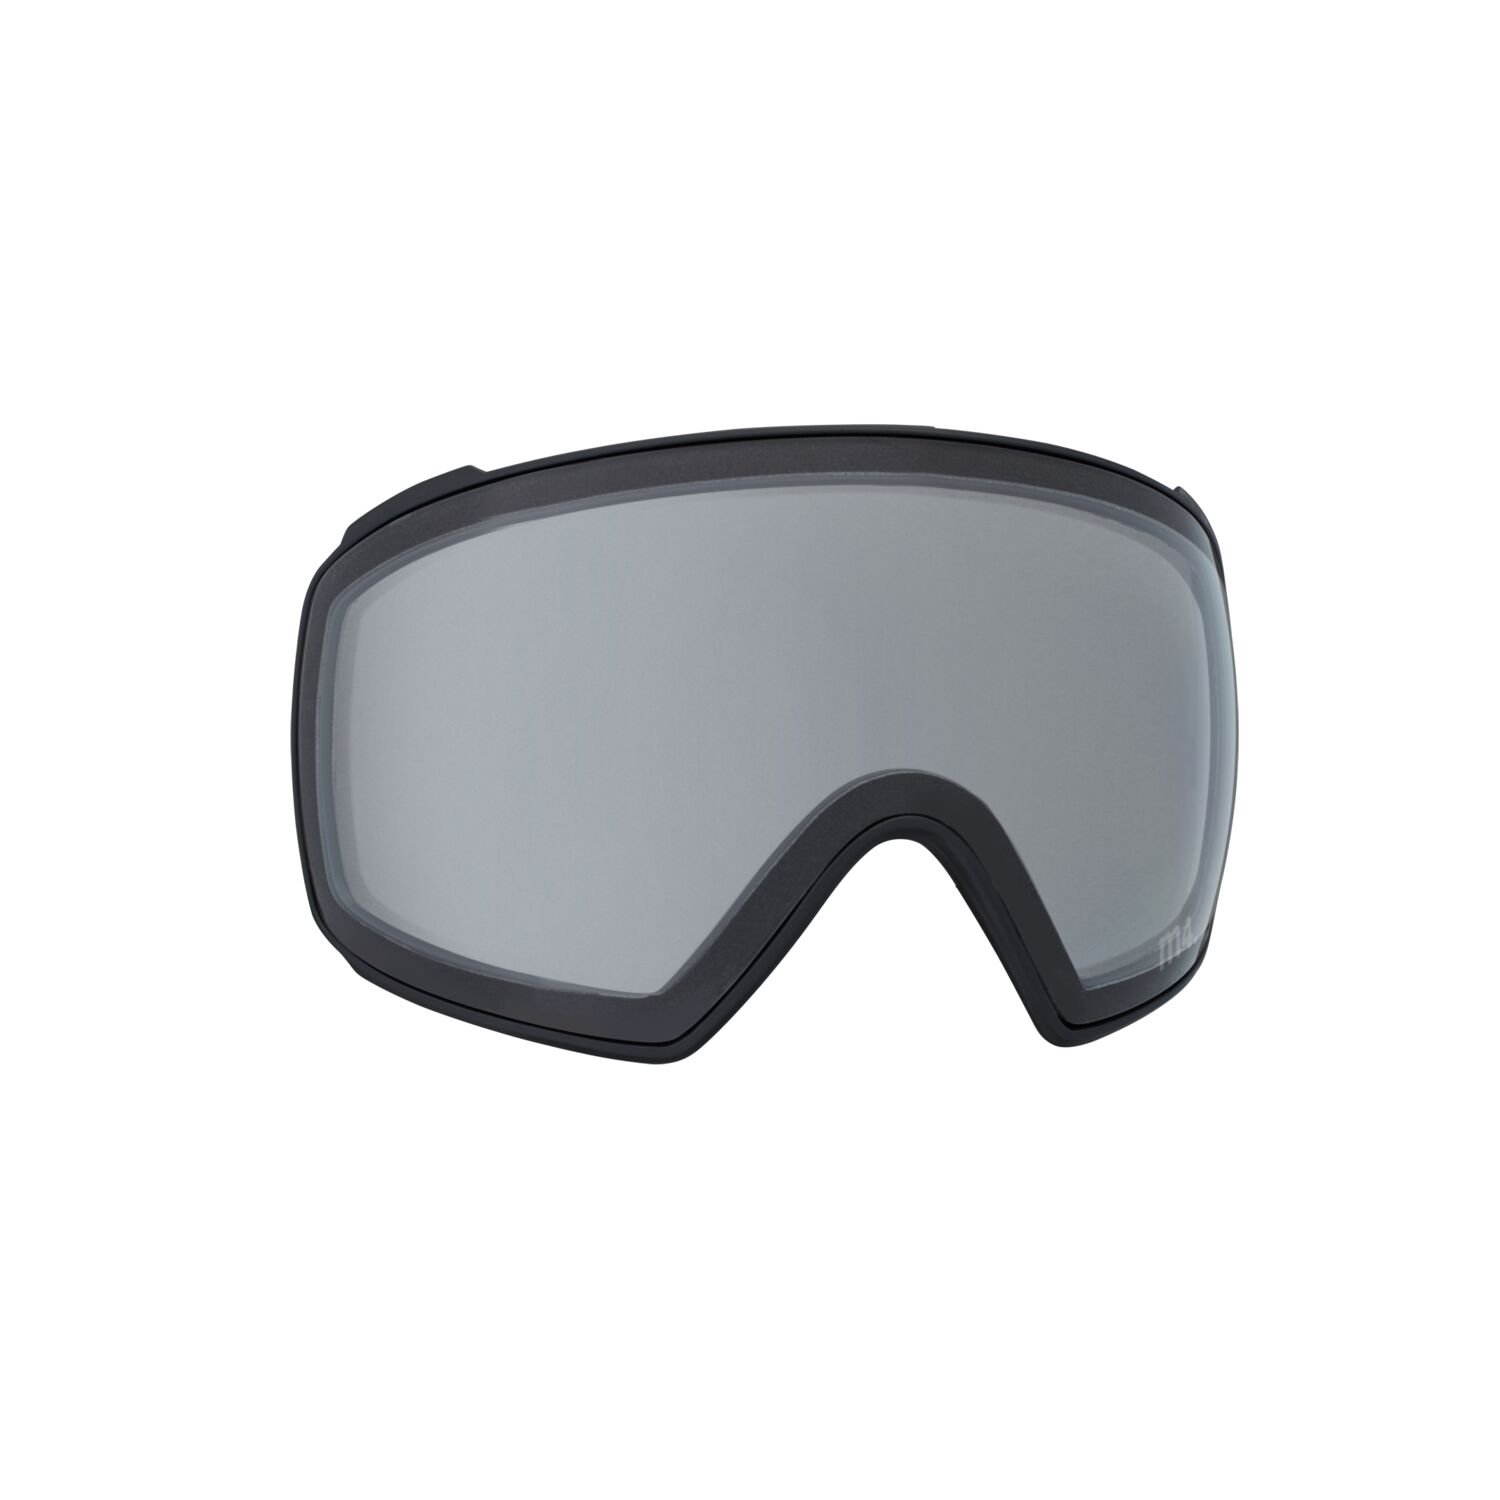 Anon M4 Toric Goggle Lens (Multiple Color Options)